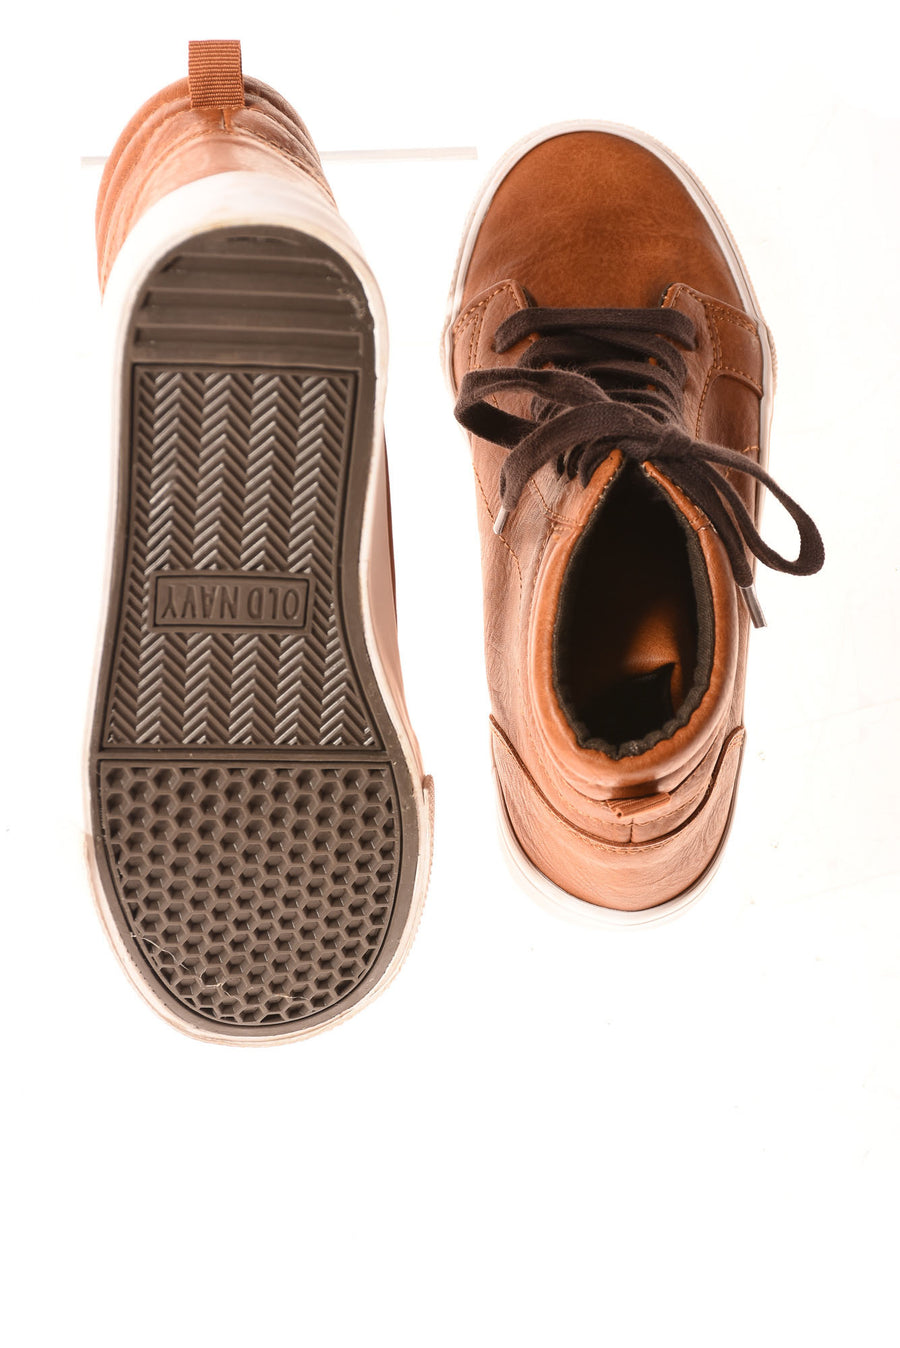 USED Old Navy Boy's Shoes  2 Brown